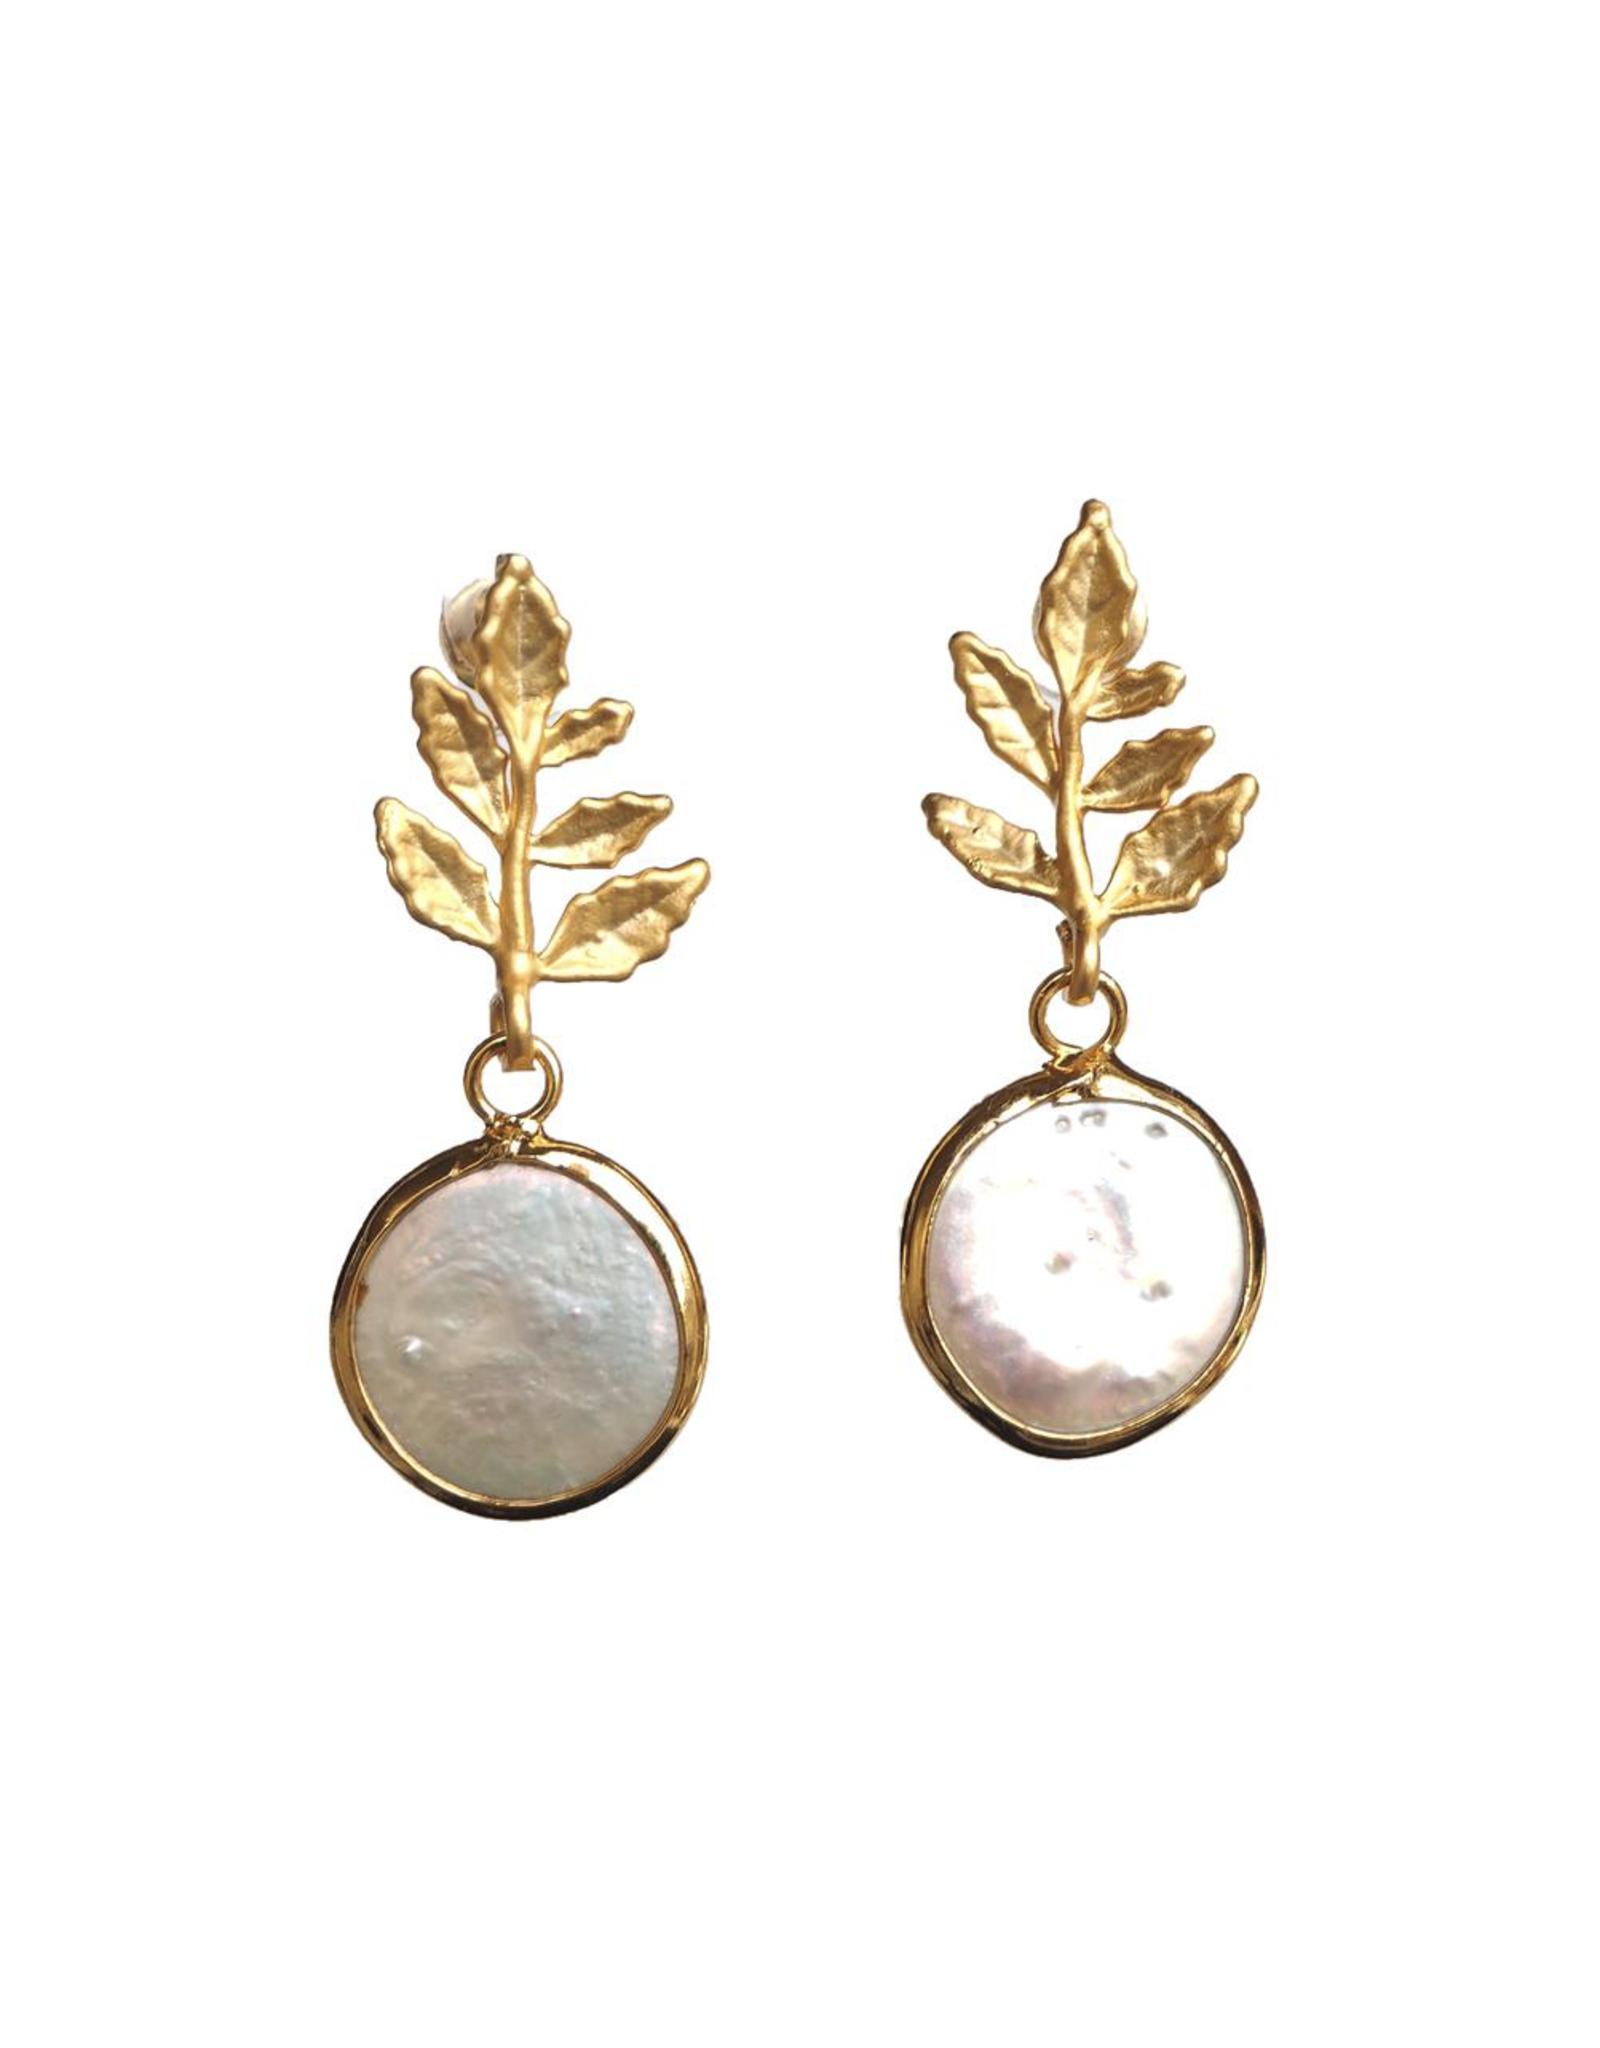 Wolf & Rose Jewelry Earrings Leaf With Pearl Drop